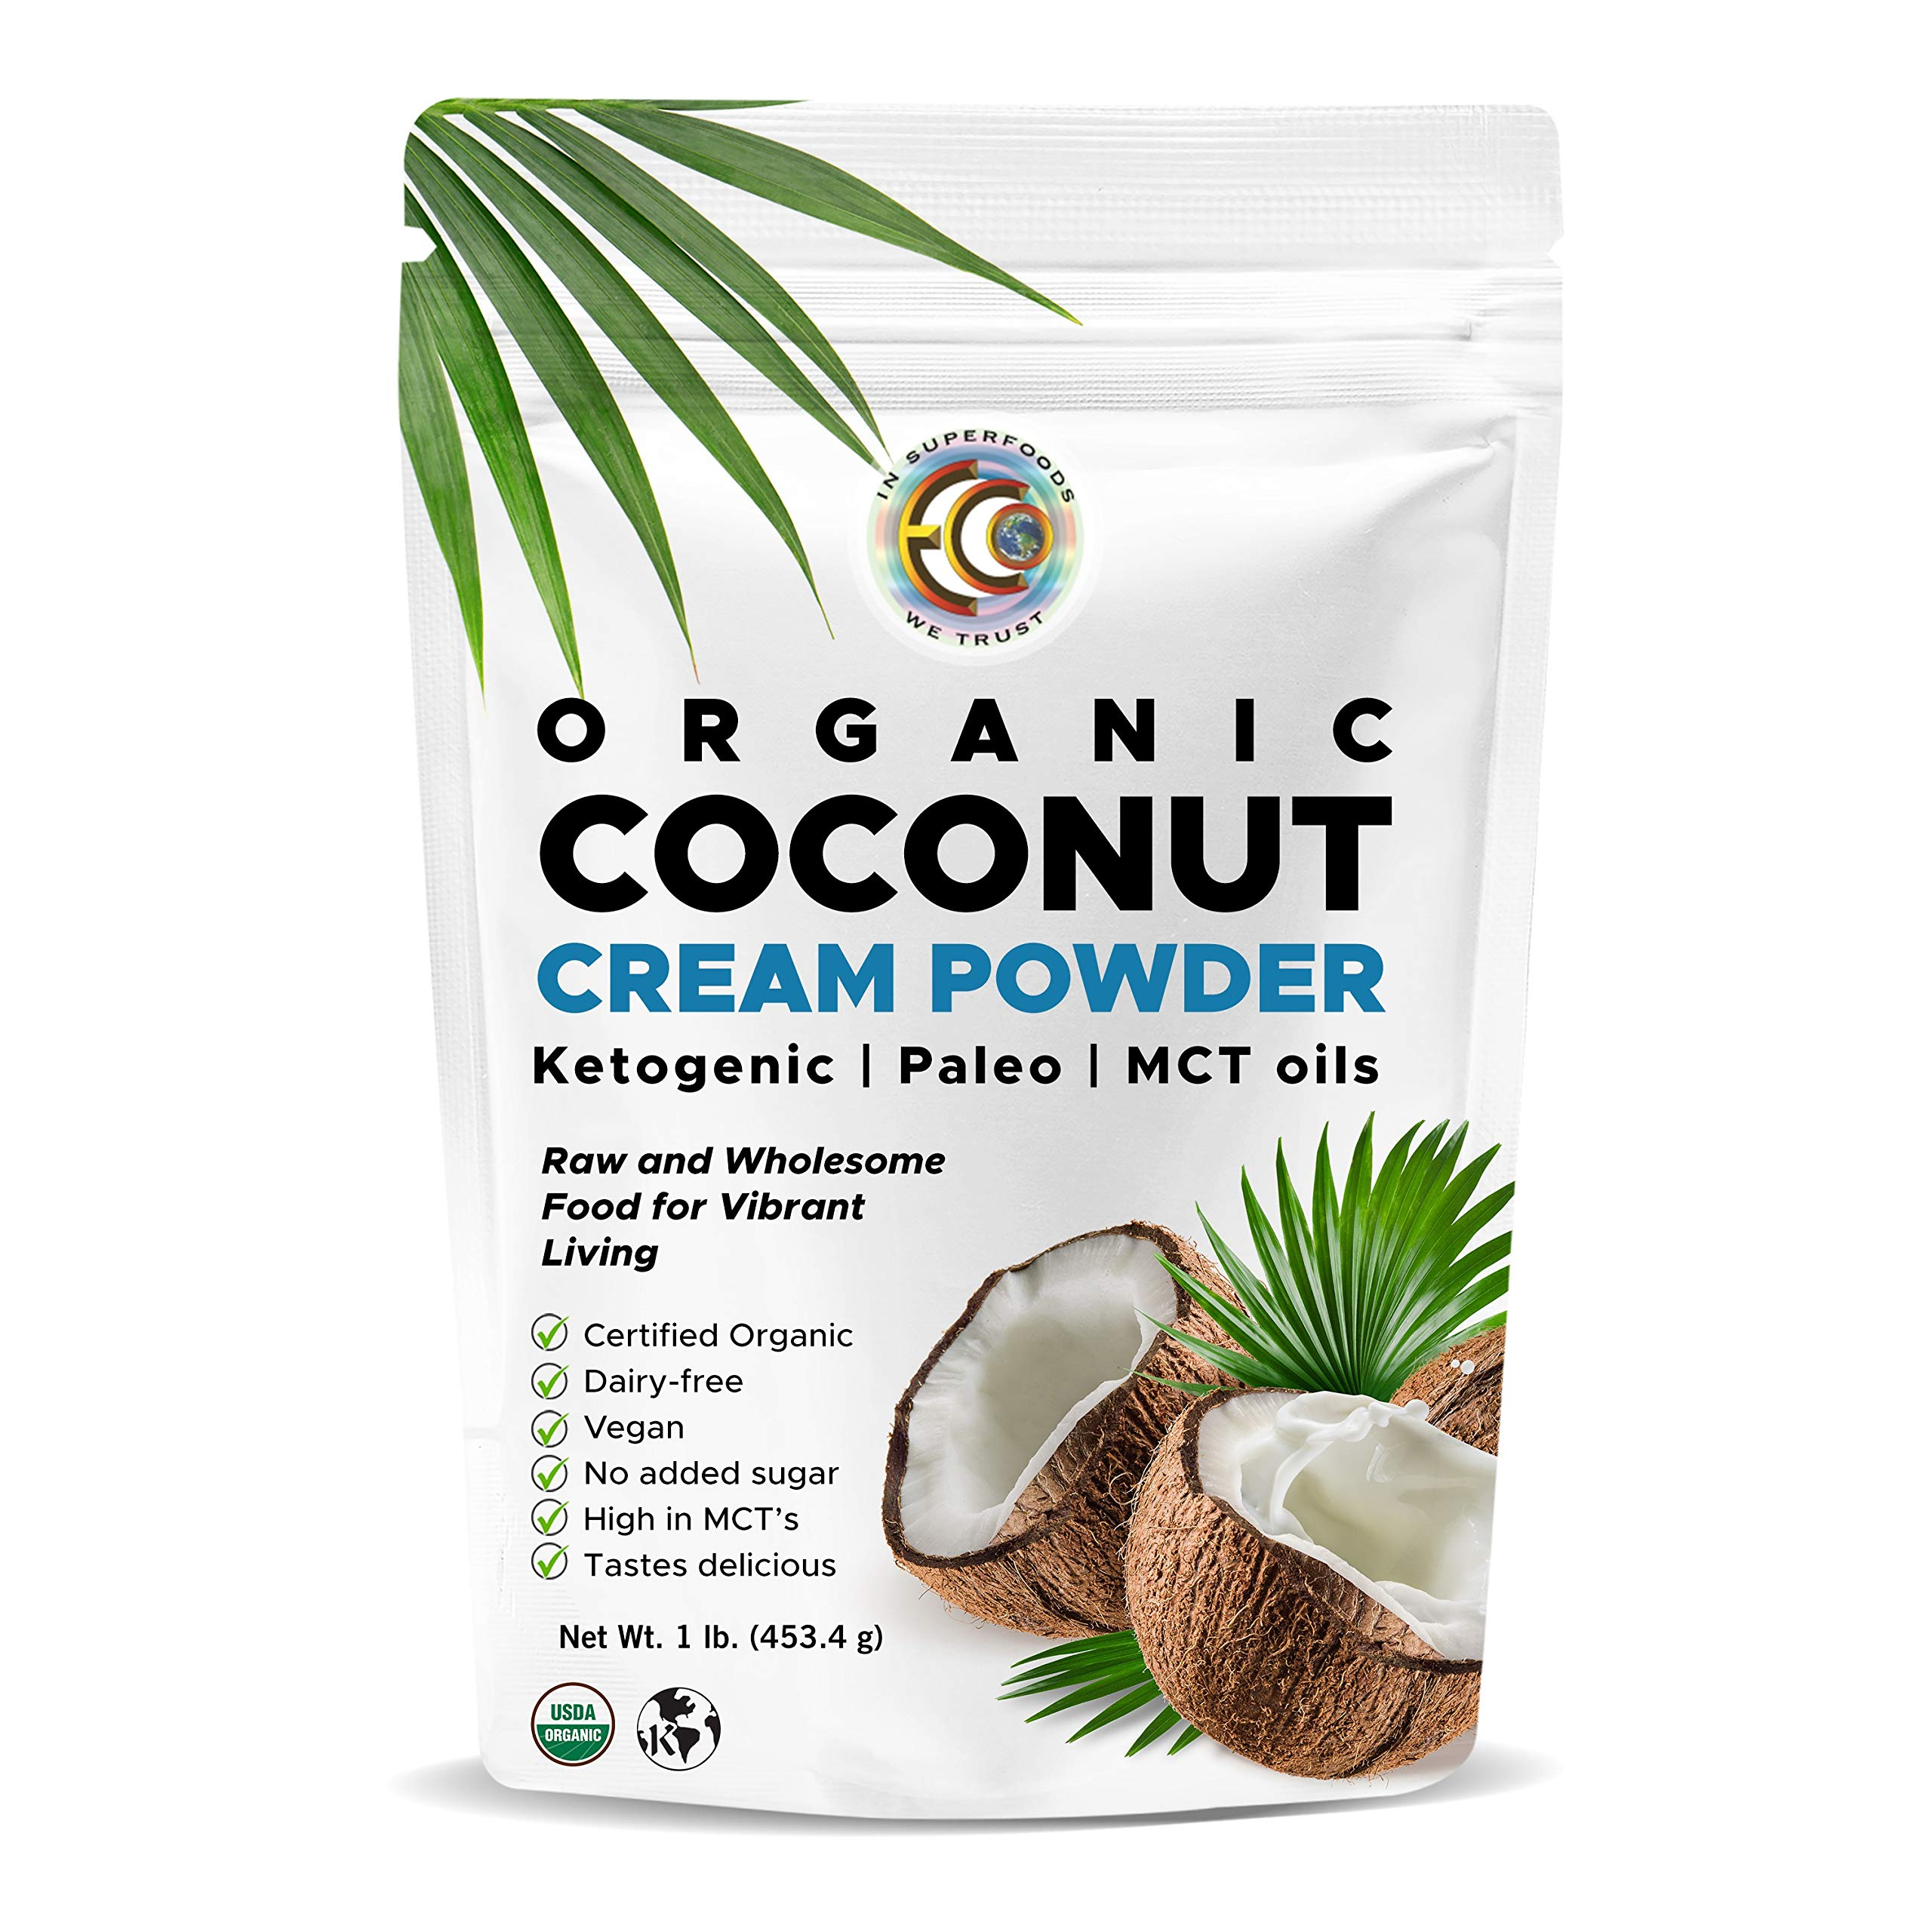 Earth Circle Organics - Organic Coconut Cream | Milk Powder, Perfect Keto Coffee Creamer - High in MCT Oil, Vegan, No Added Sugar, Vegan, Gluten and Dairy Free - 1 Pound1 Pound by Earth Circle Organics